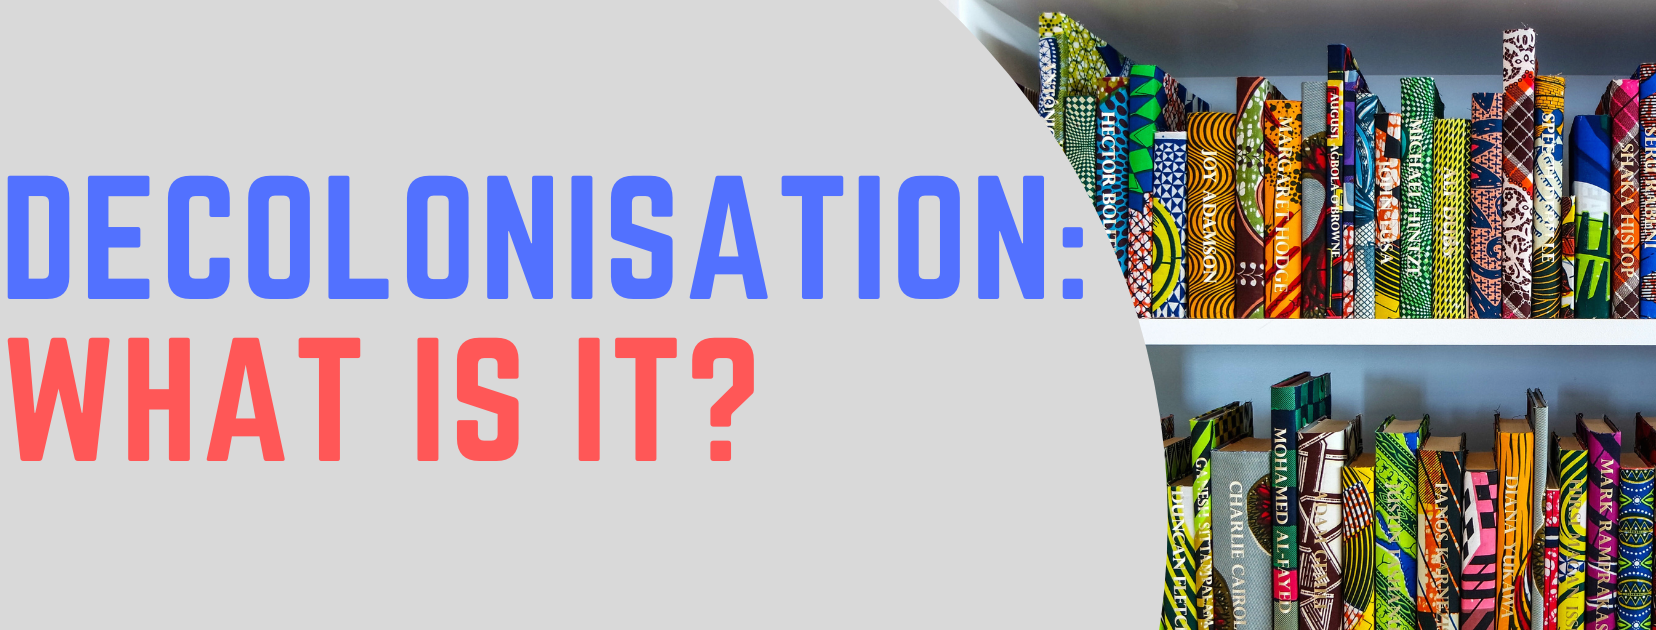 Decolonisation: what is it? banner